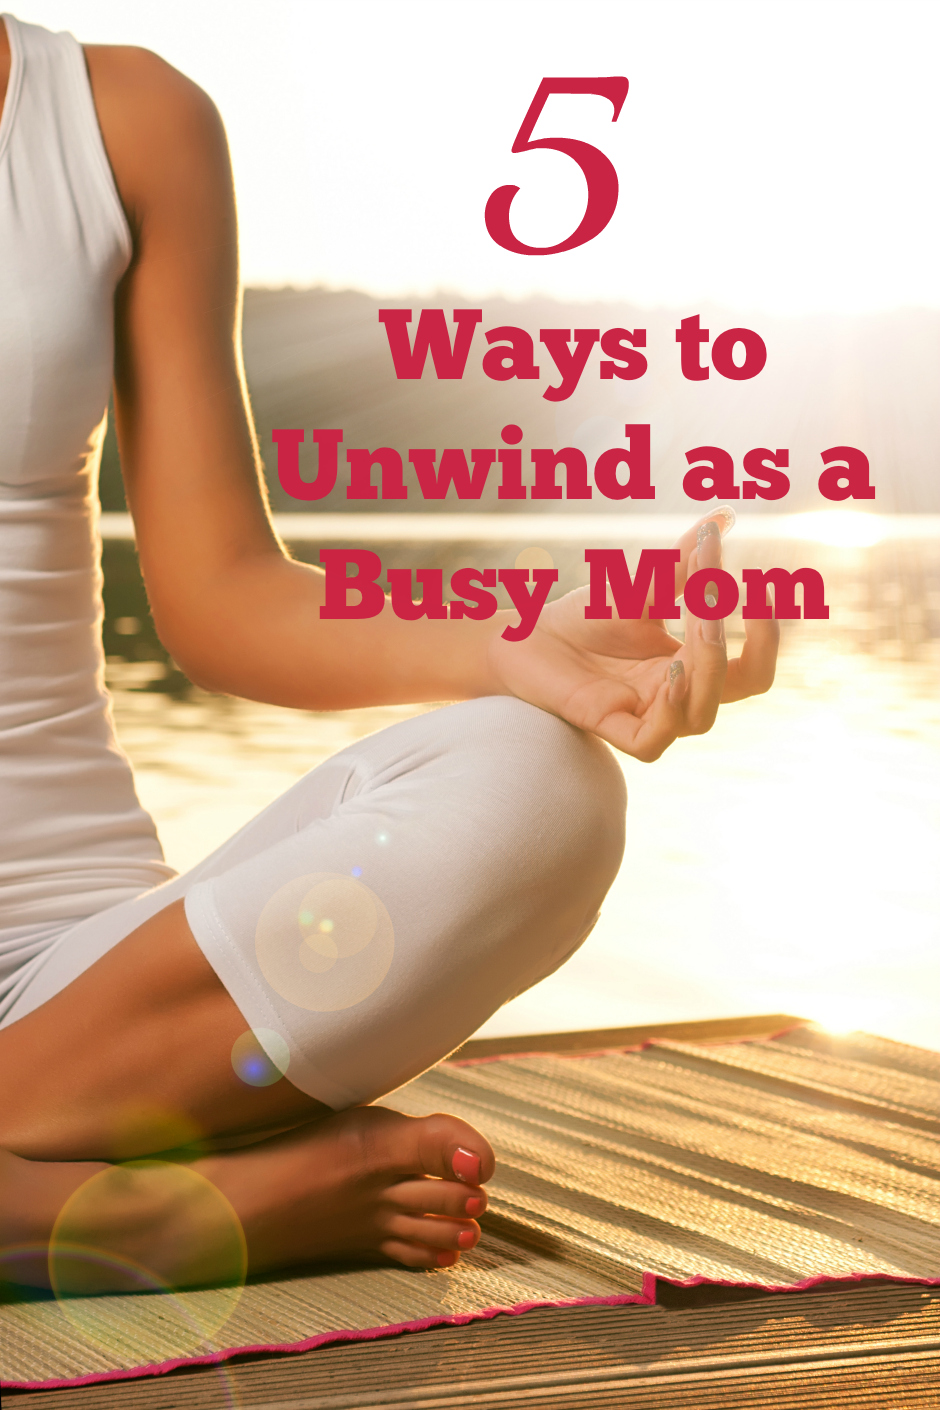 5 Ways to Unwind as a Busy Mom